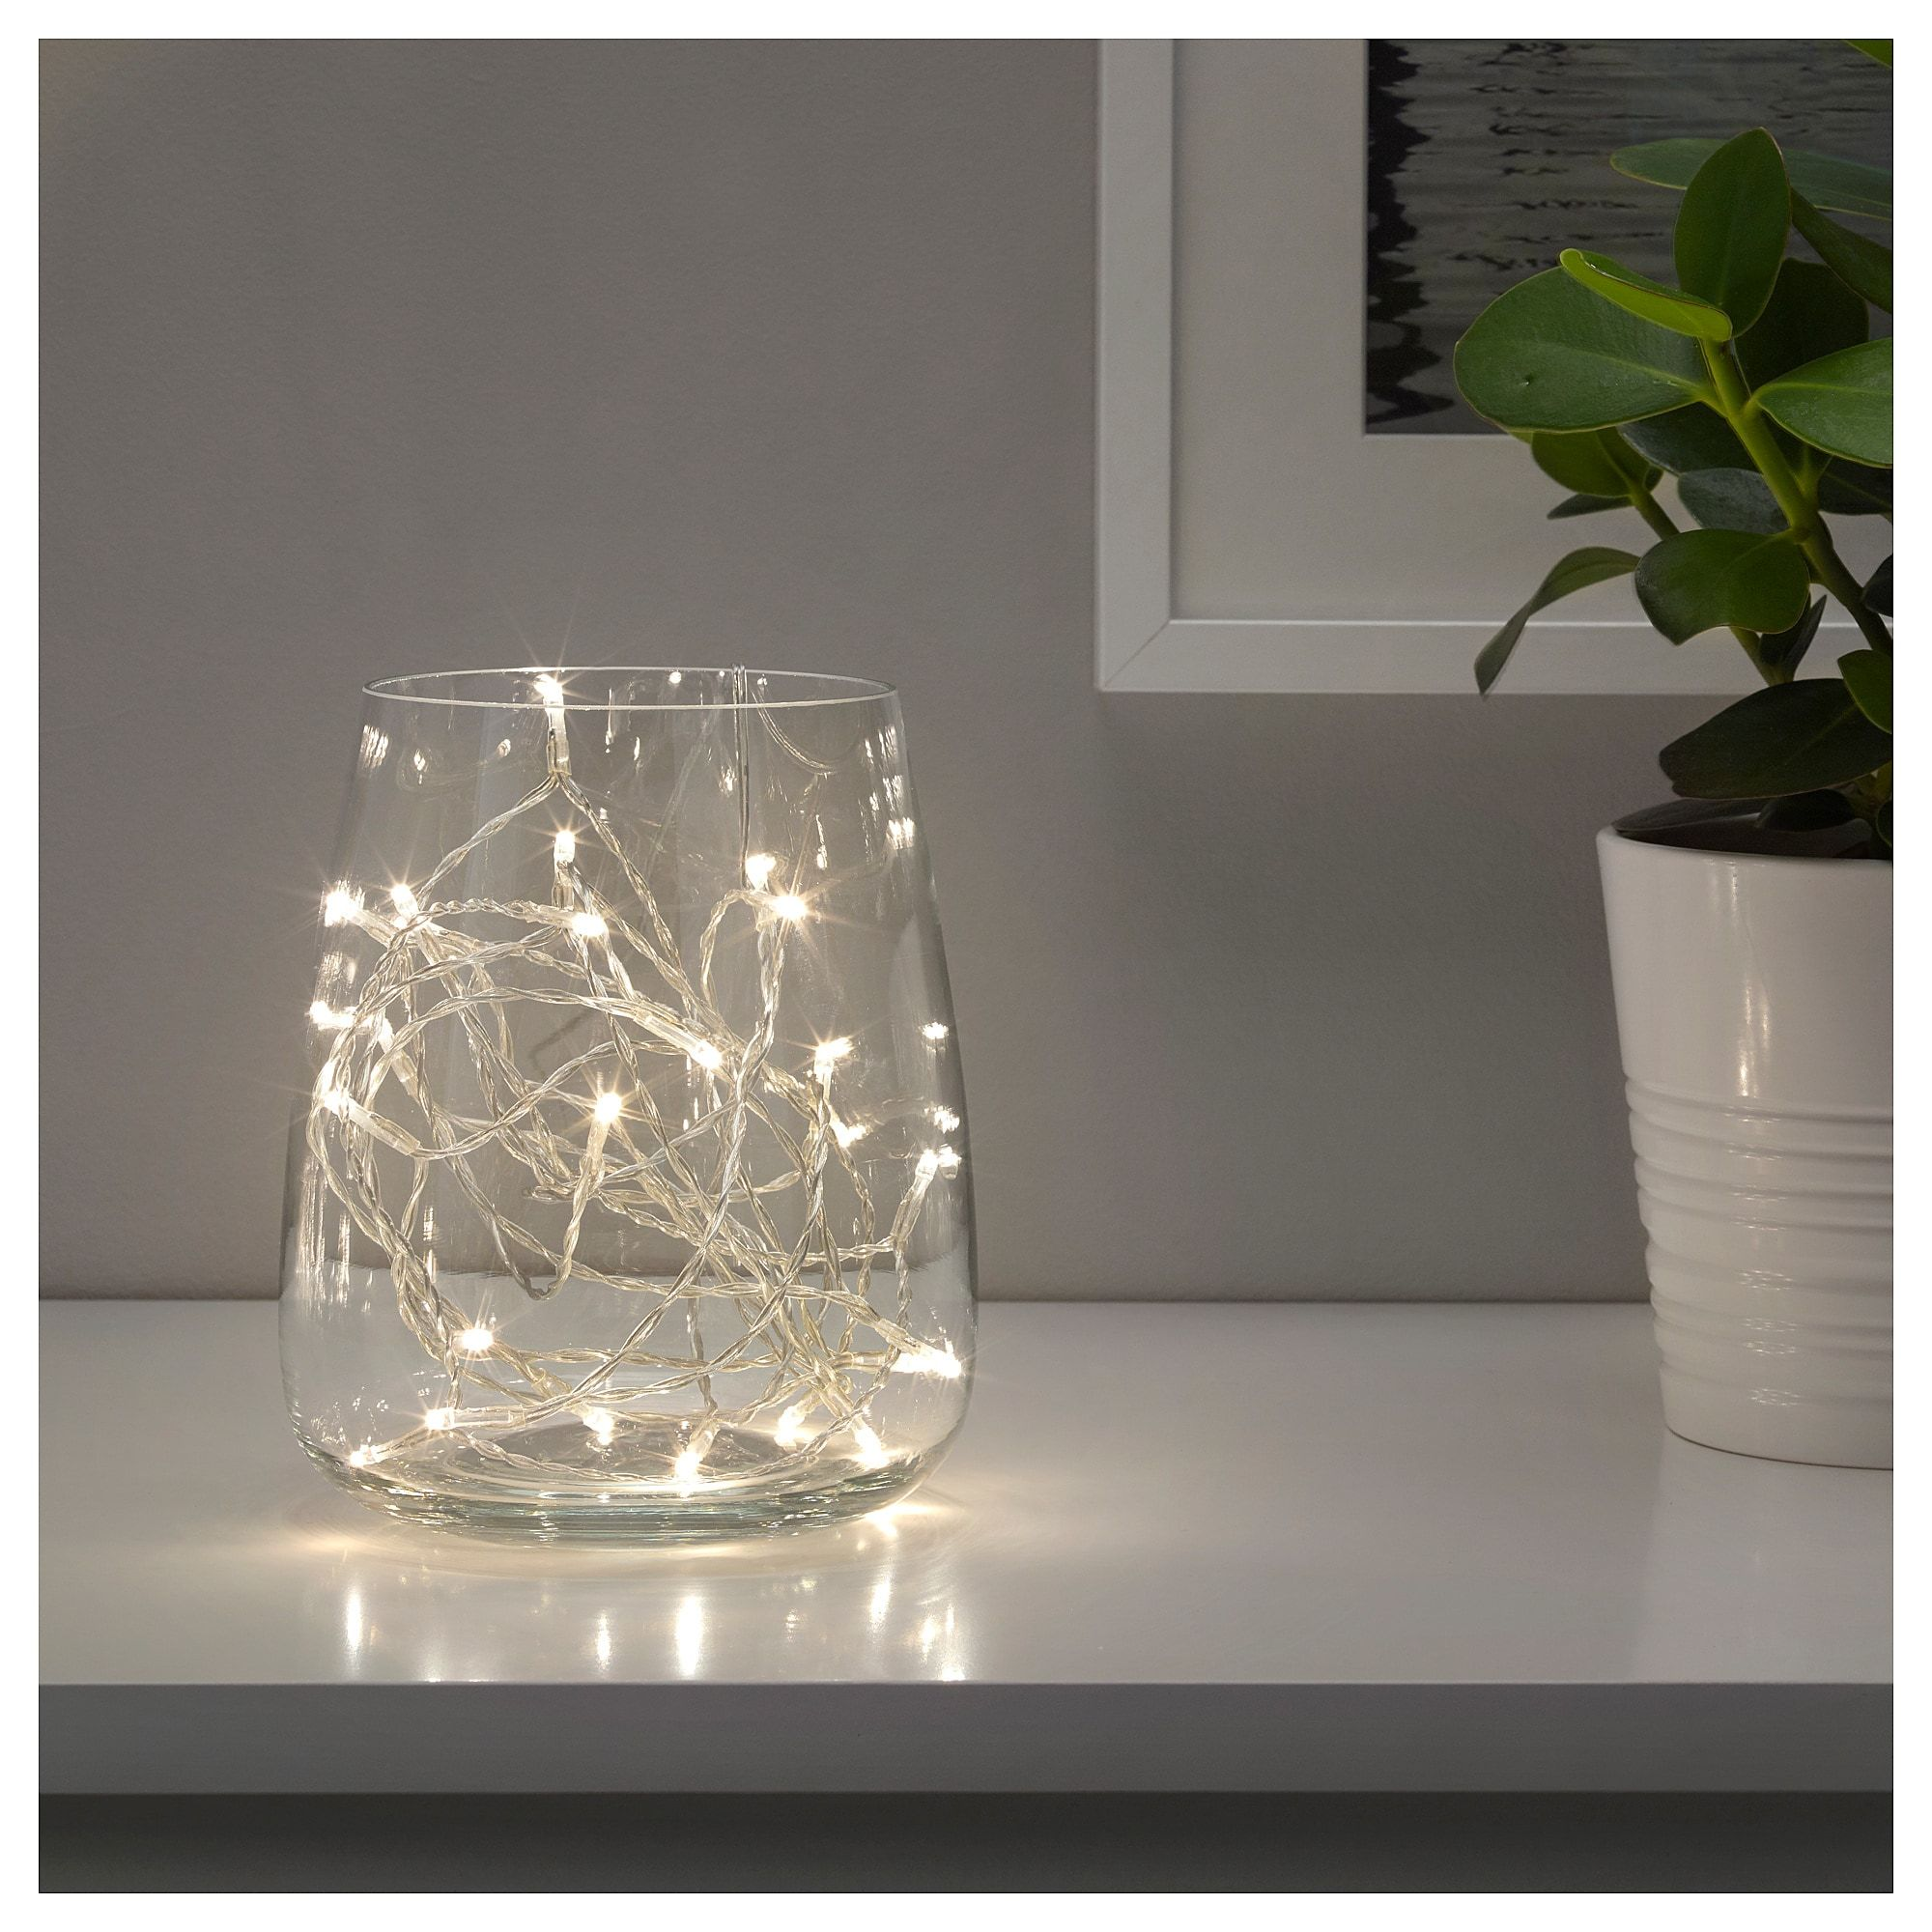 Guirlande Led Ikea Ikea Ledfyr Led String Light With 24 Lights Indoor Silver Color